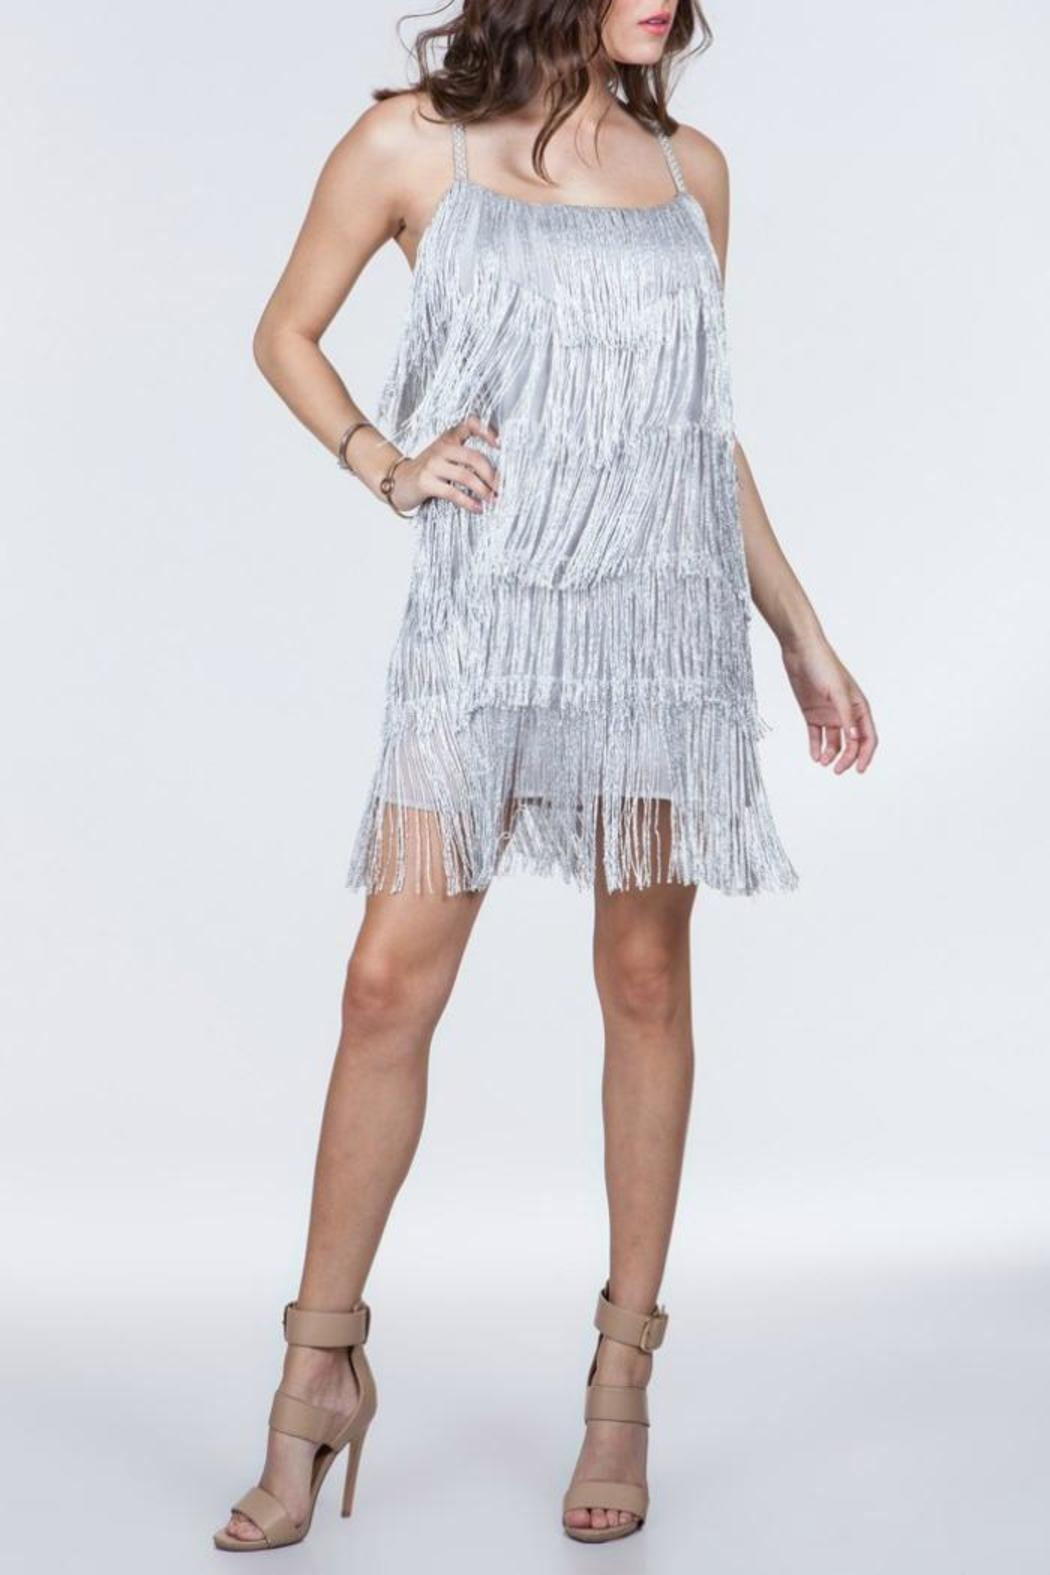 ark amp co silver fringe dress from atlanta by collage